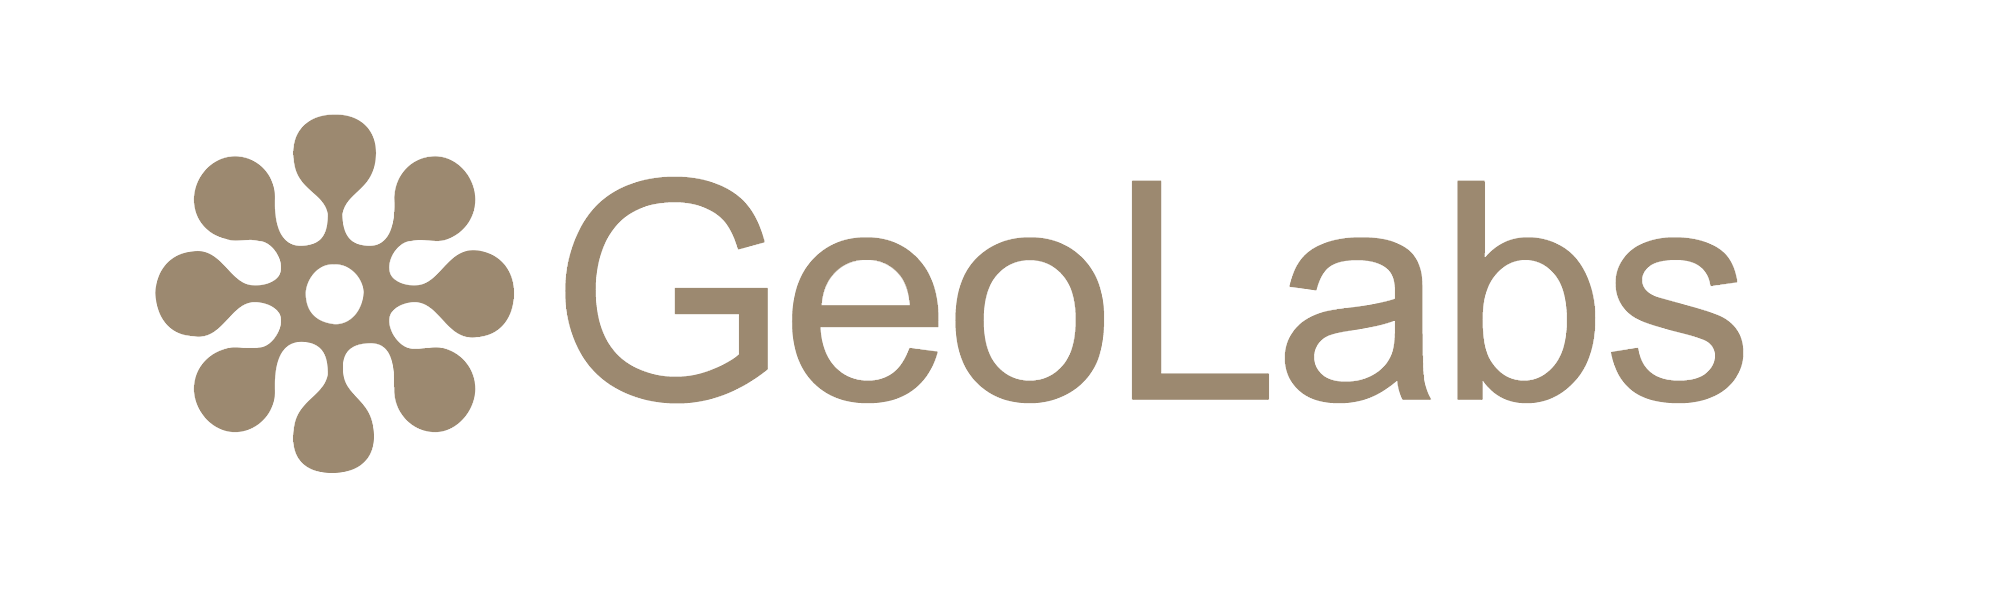 http://www.zoo-project.org/img/geolabs-logo.png